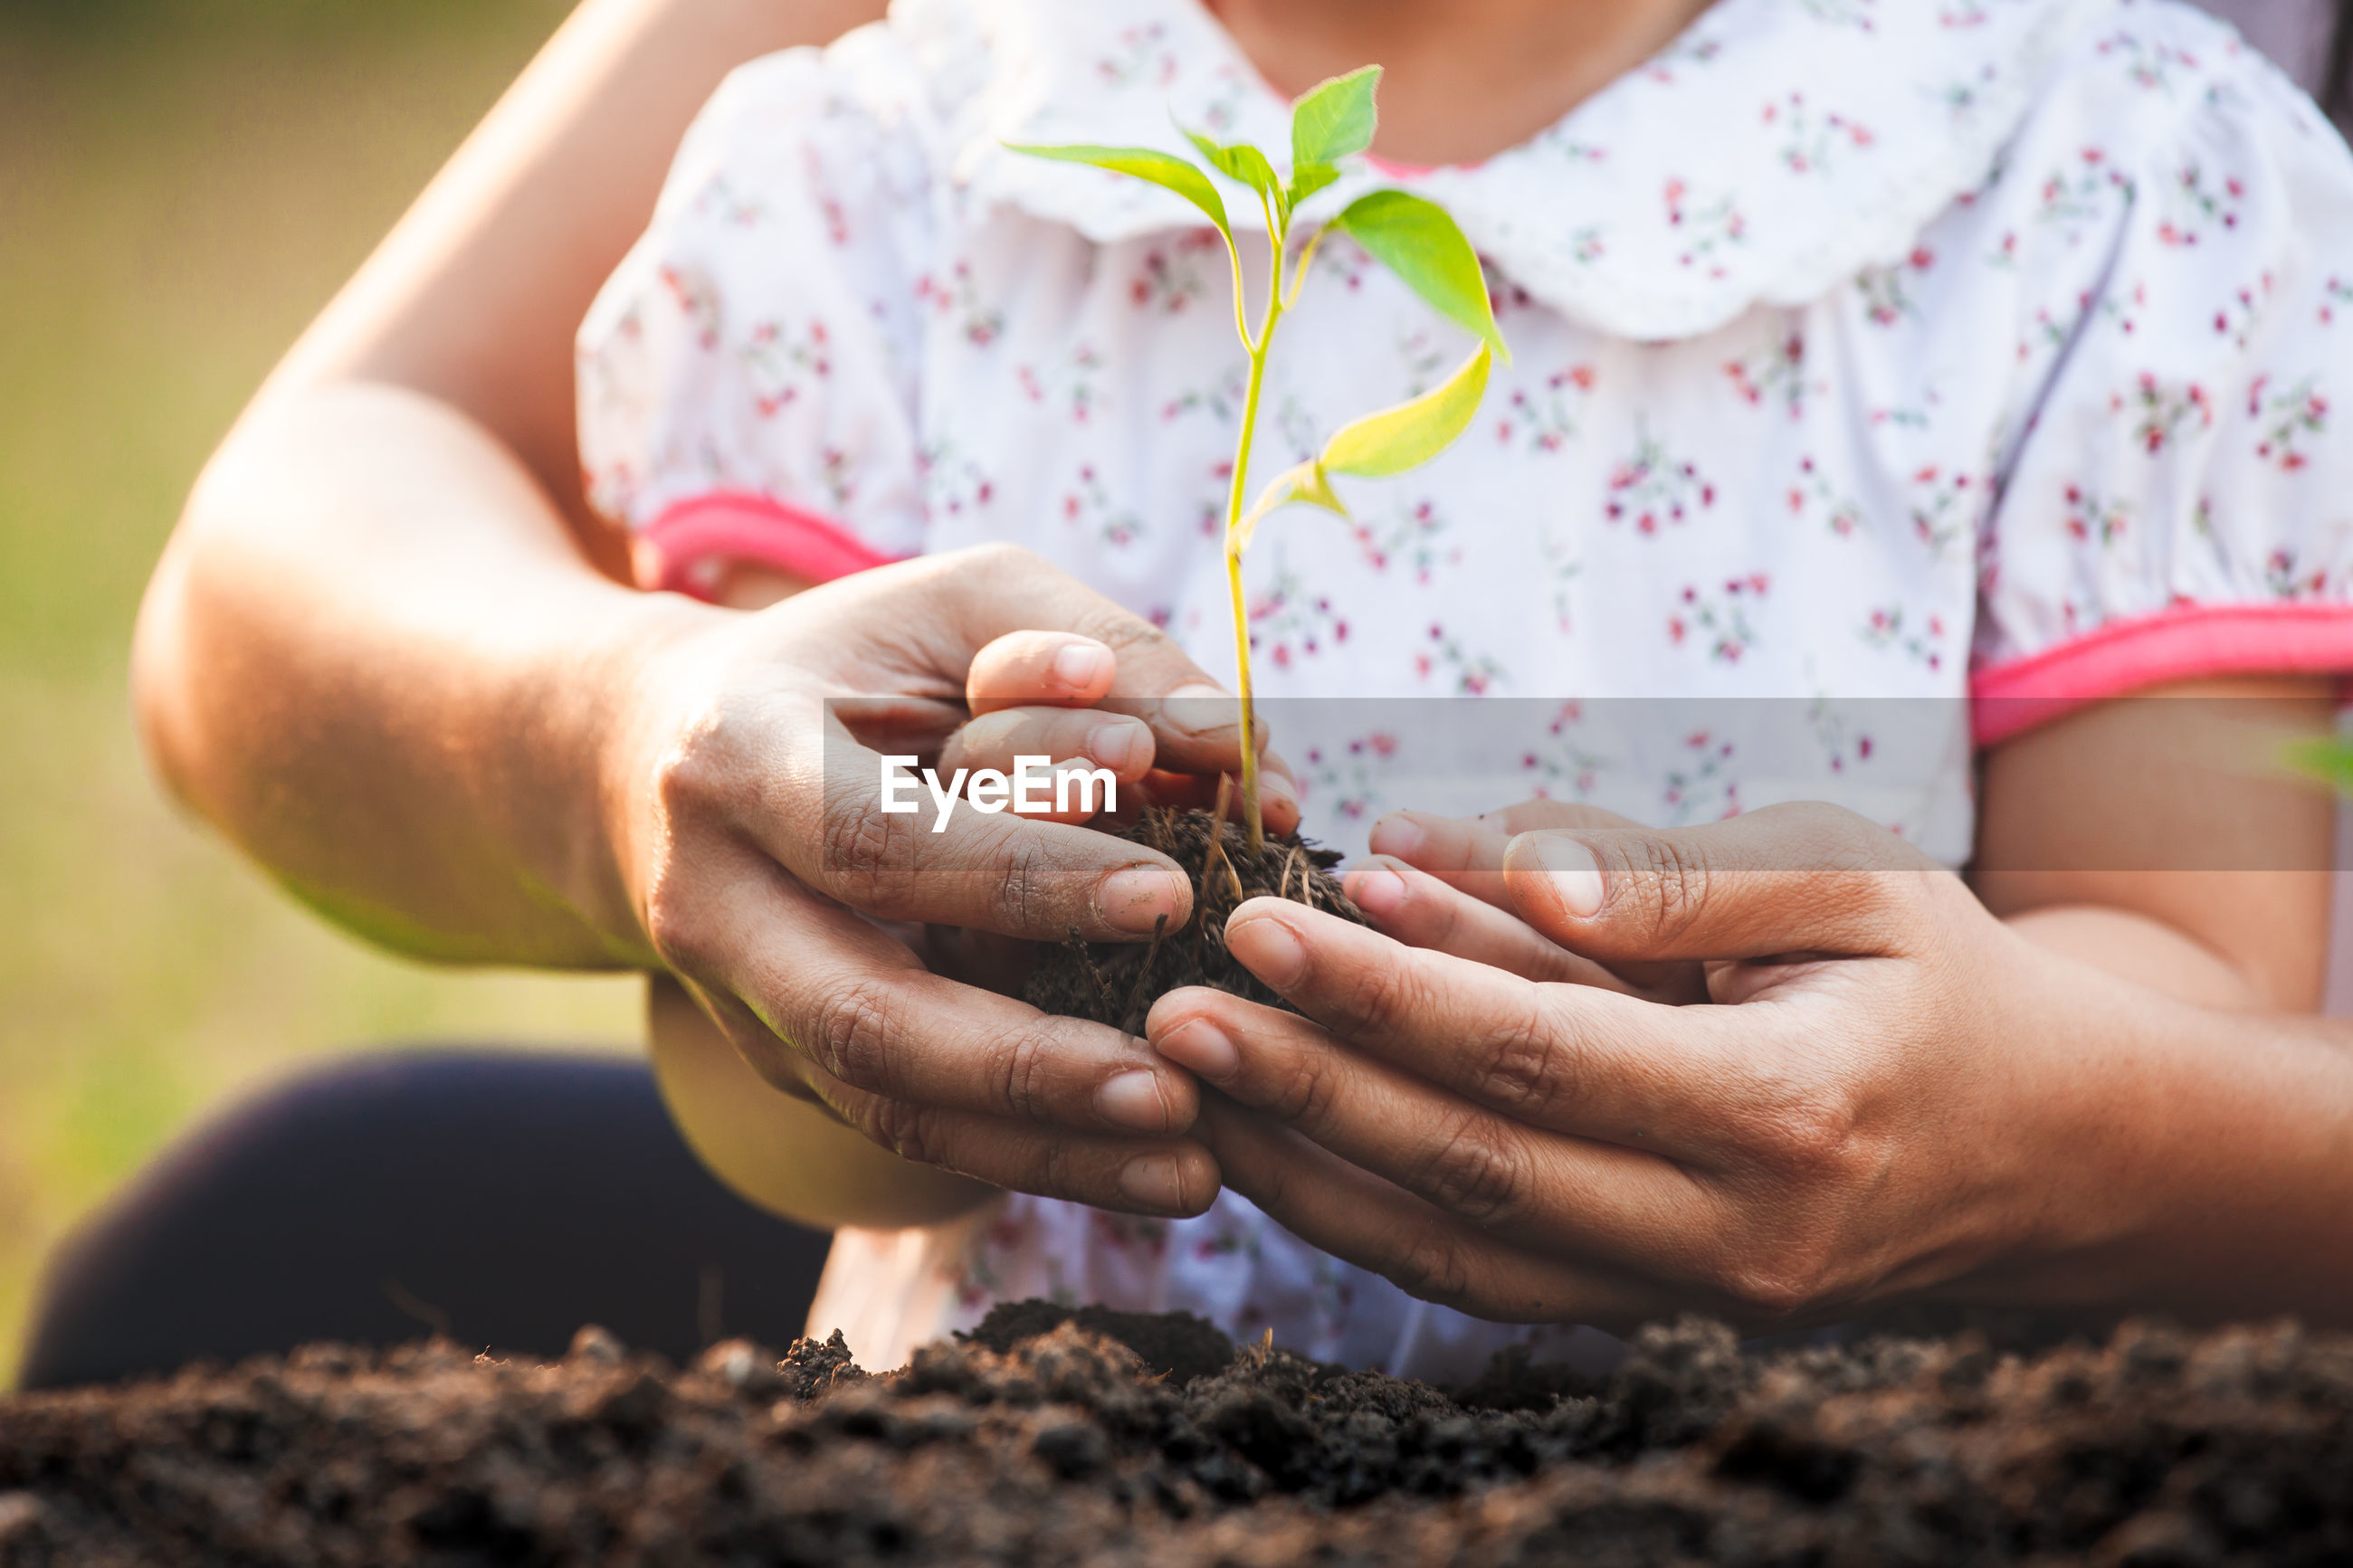 Midsection of mother and girl holding plant in hand outdoors